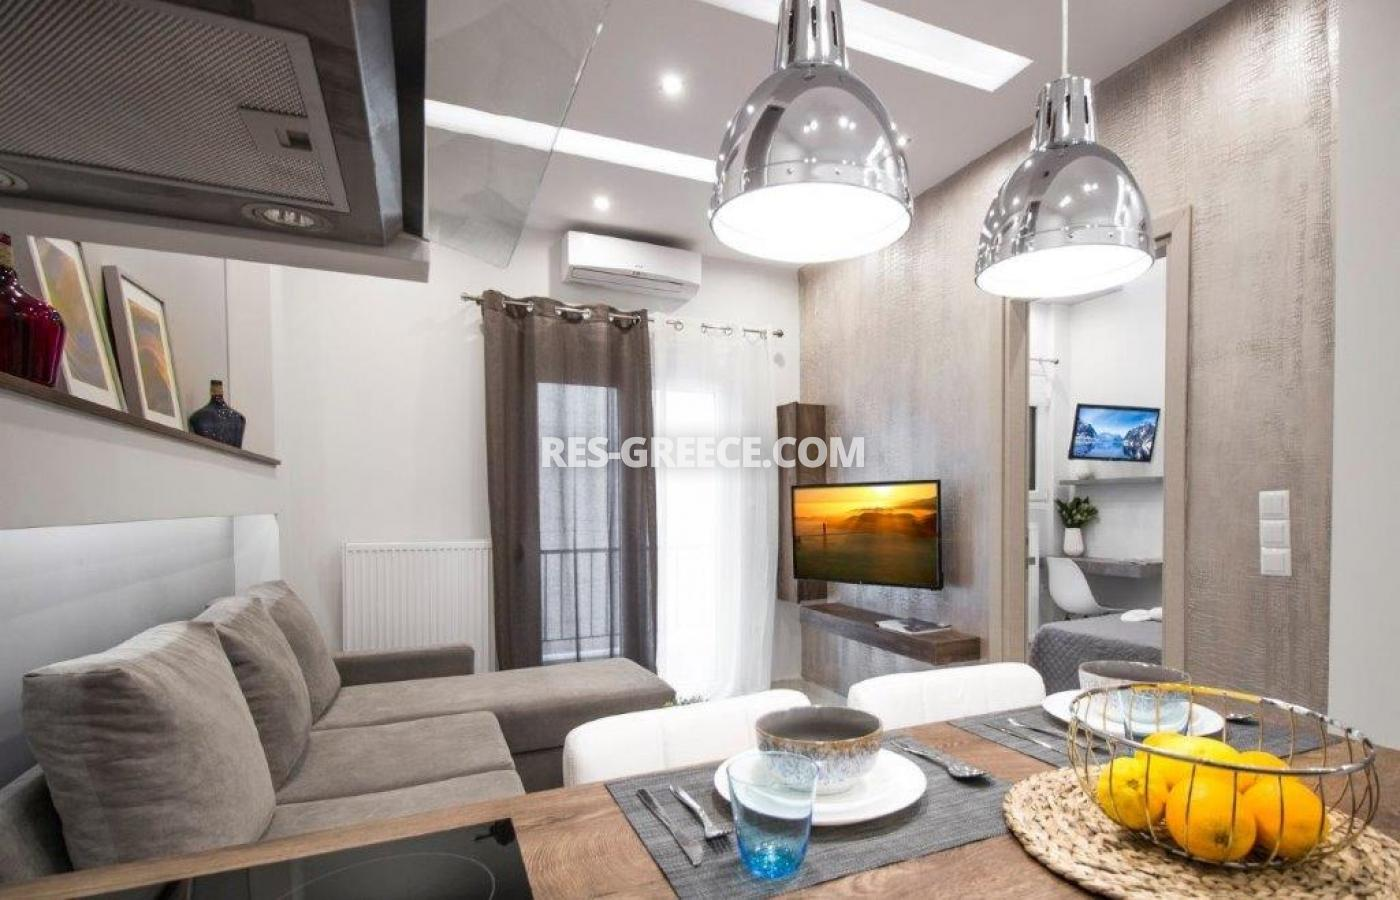 Germanou, Central Macedonia, Greece - apartments in Thessaloniki center for residence or long-term rent - Photo 3